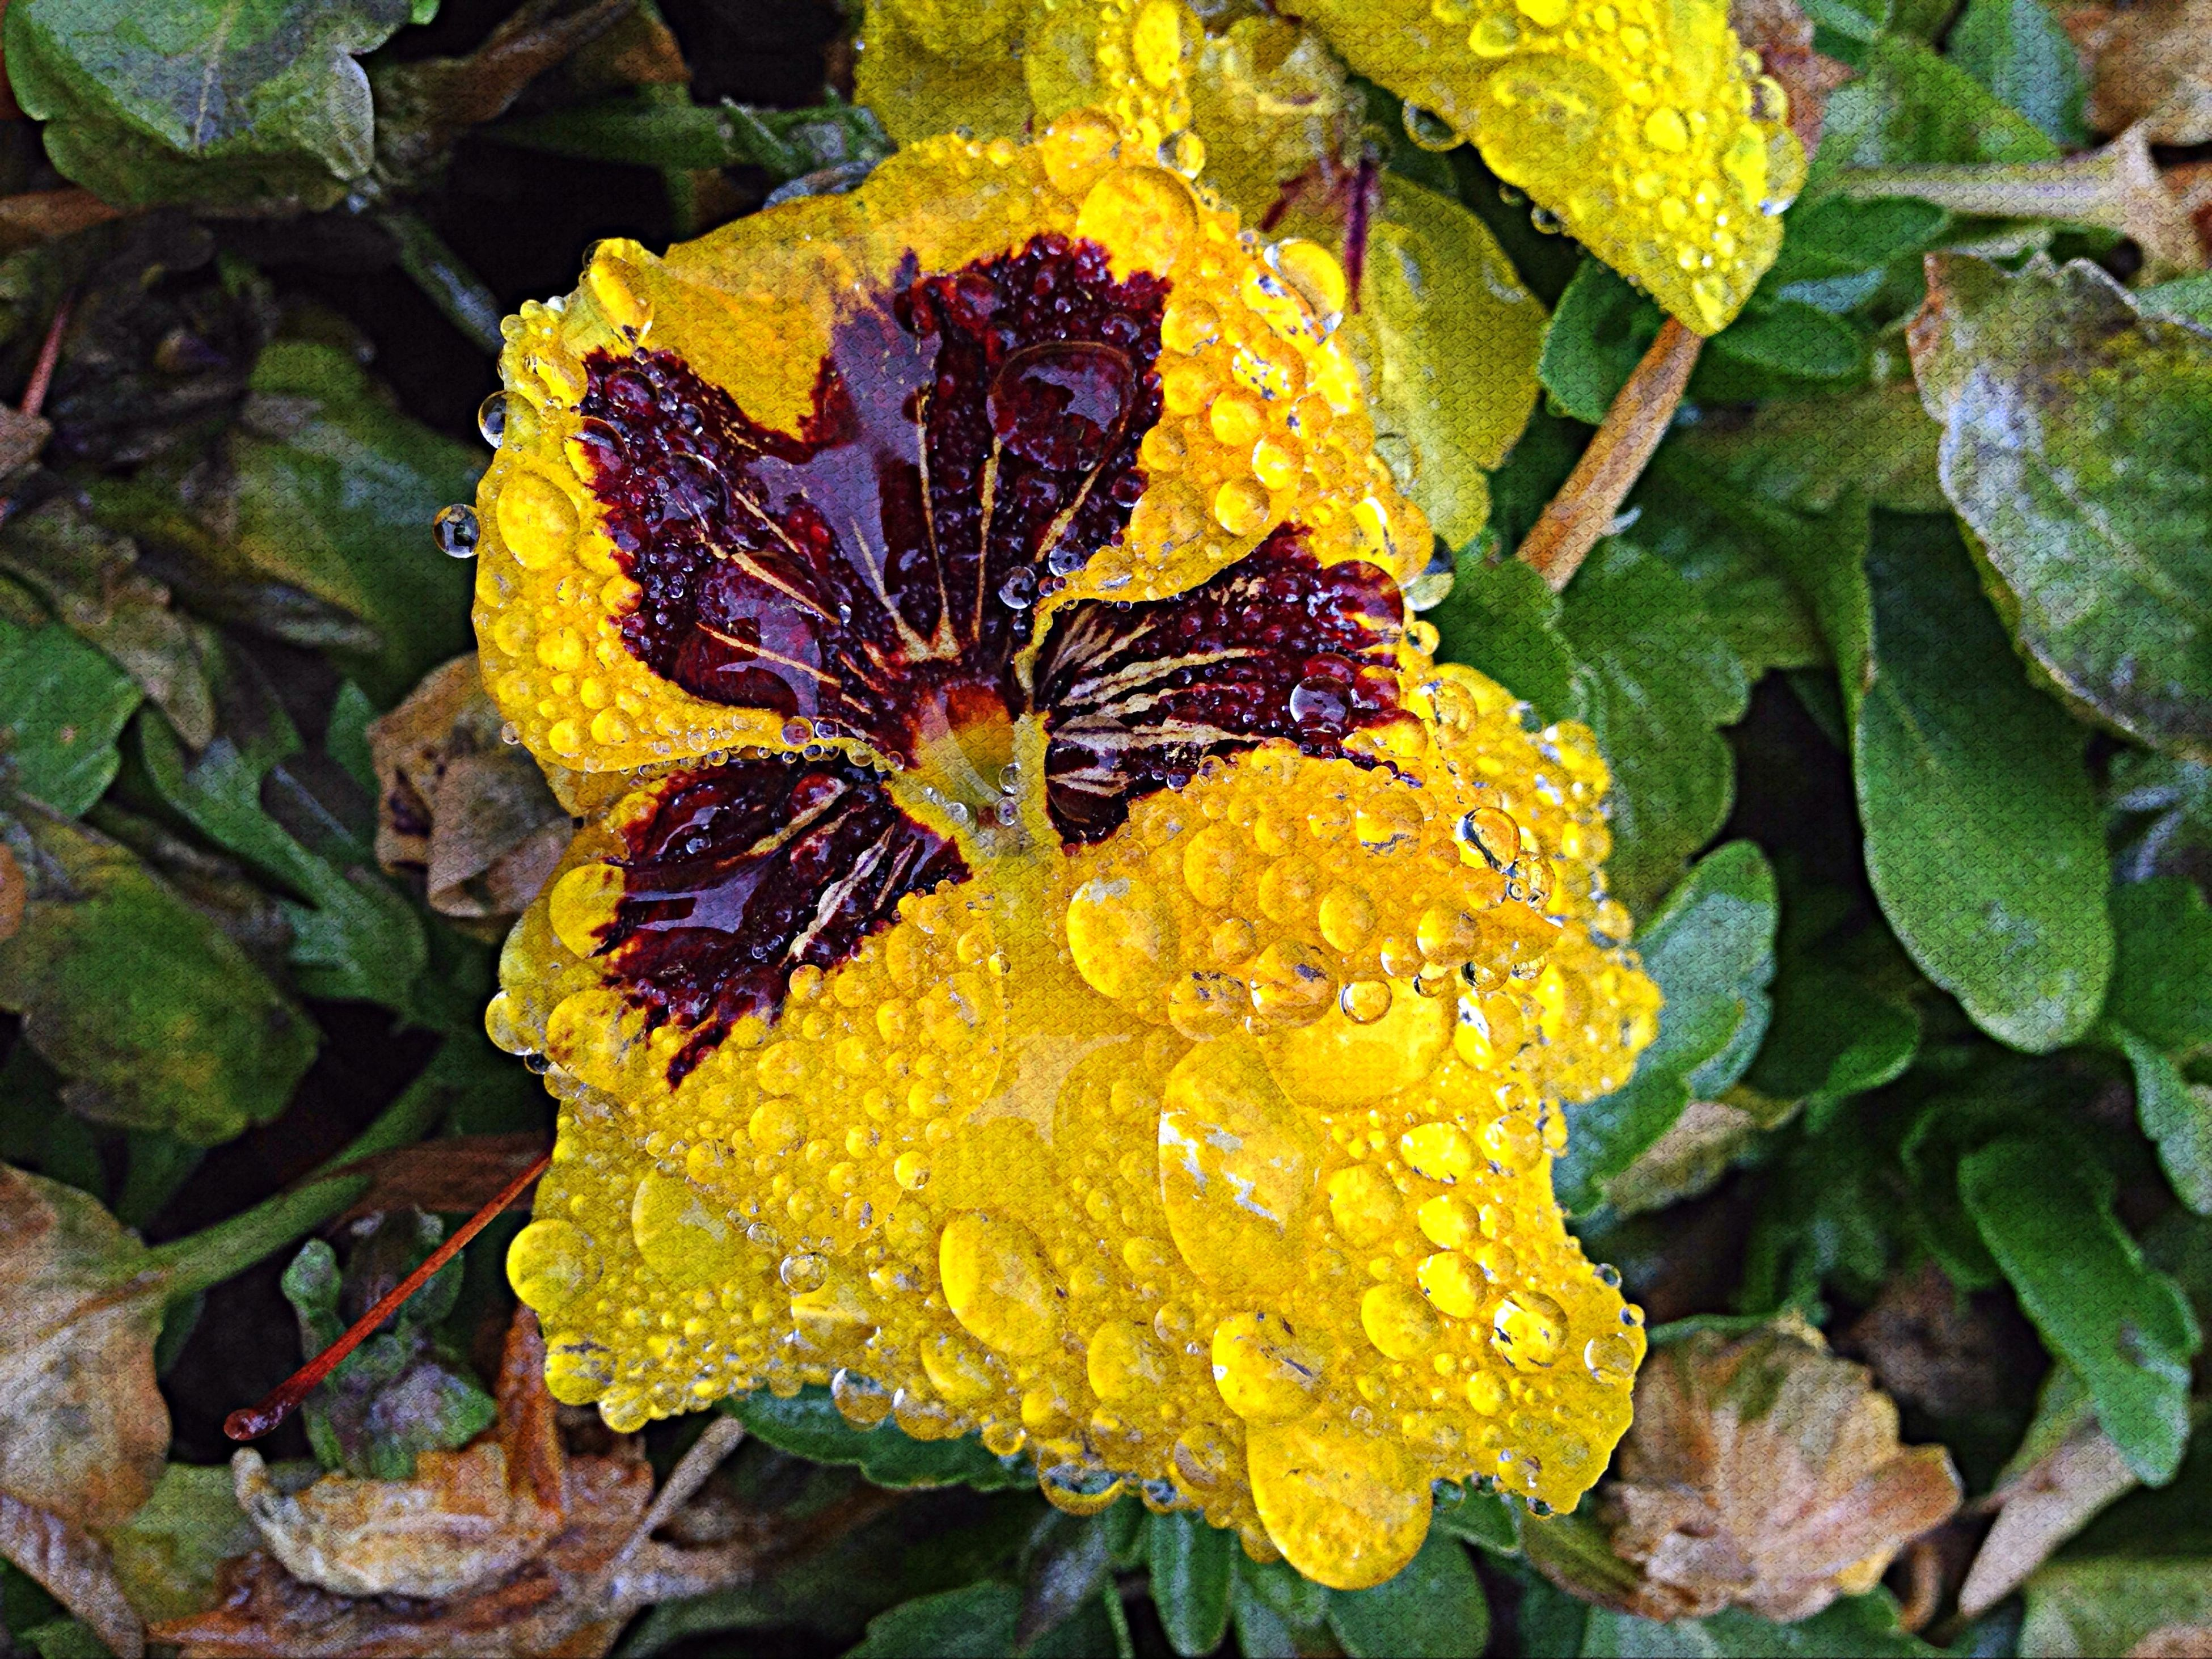 leaf, yellow, fragility, season, autumn, nature, beauty in nature, leaf vein, leaves, close-up, growth, change, wet, high angle view, natural pattern, freshness, water, plant, flower, drop